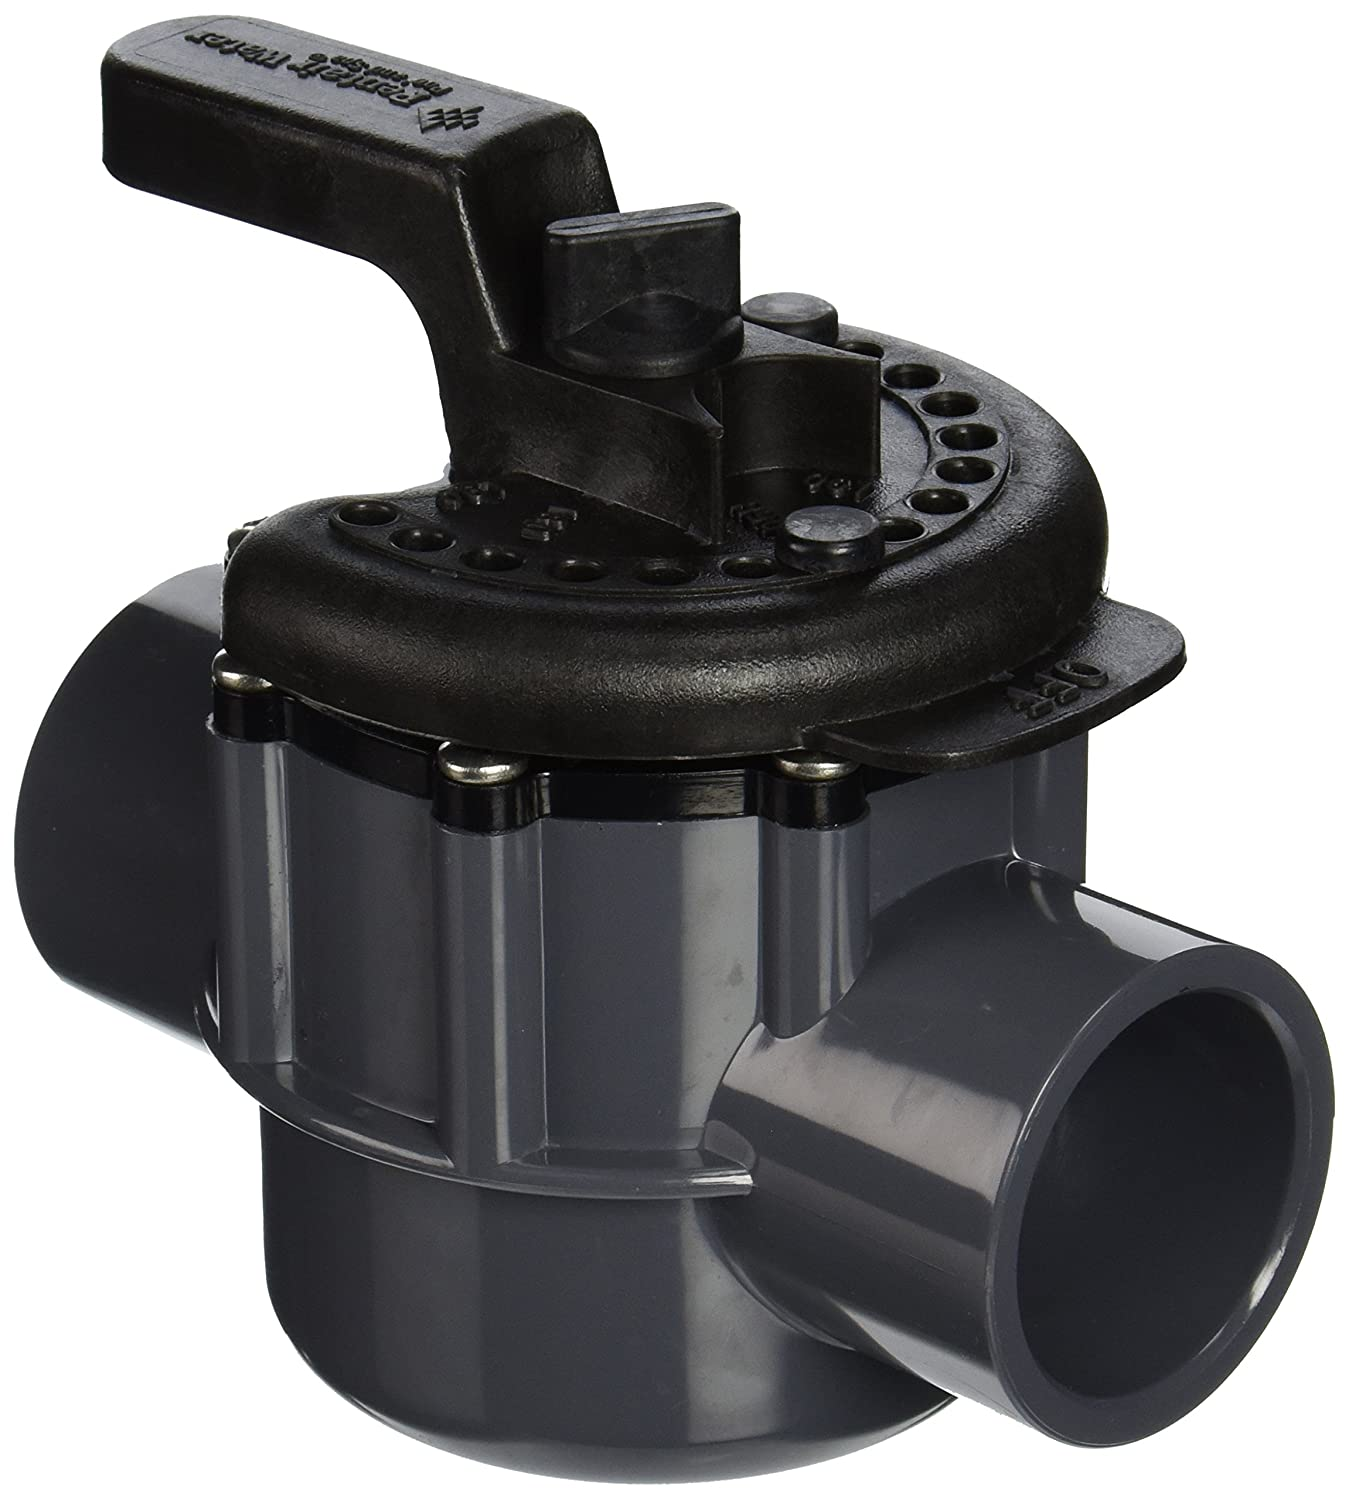 Pentair 263038 1 1 2 Inch 2 Way Pvc Diverter Valve For